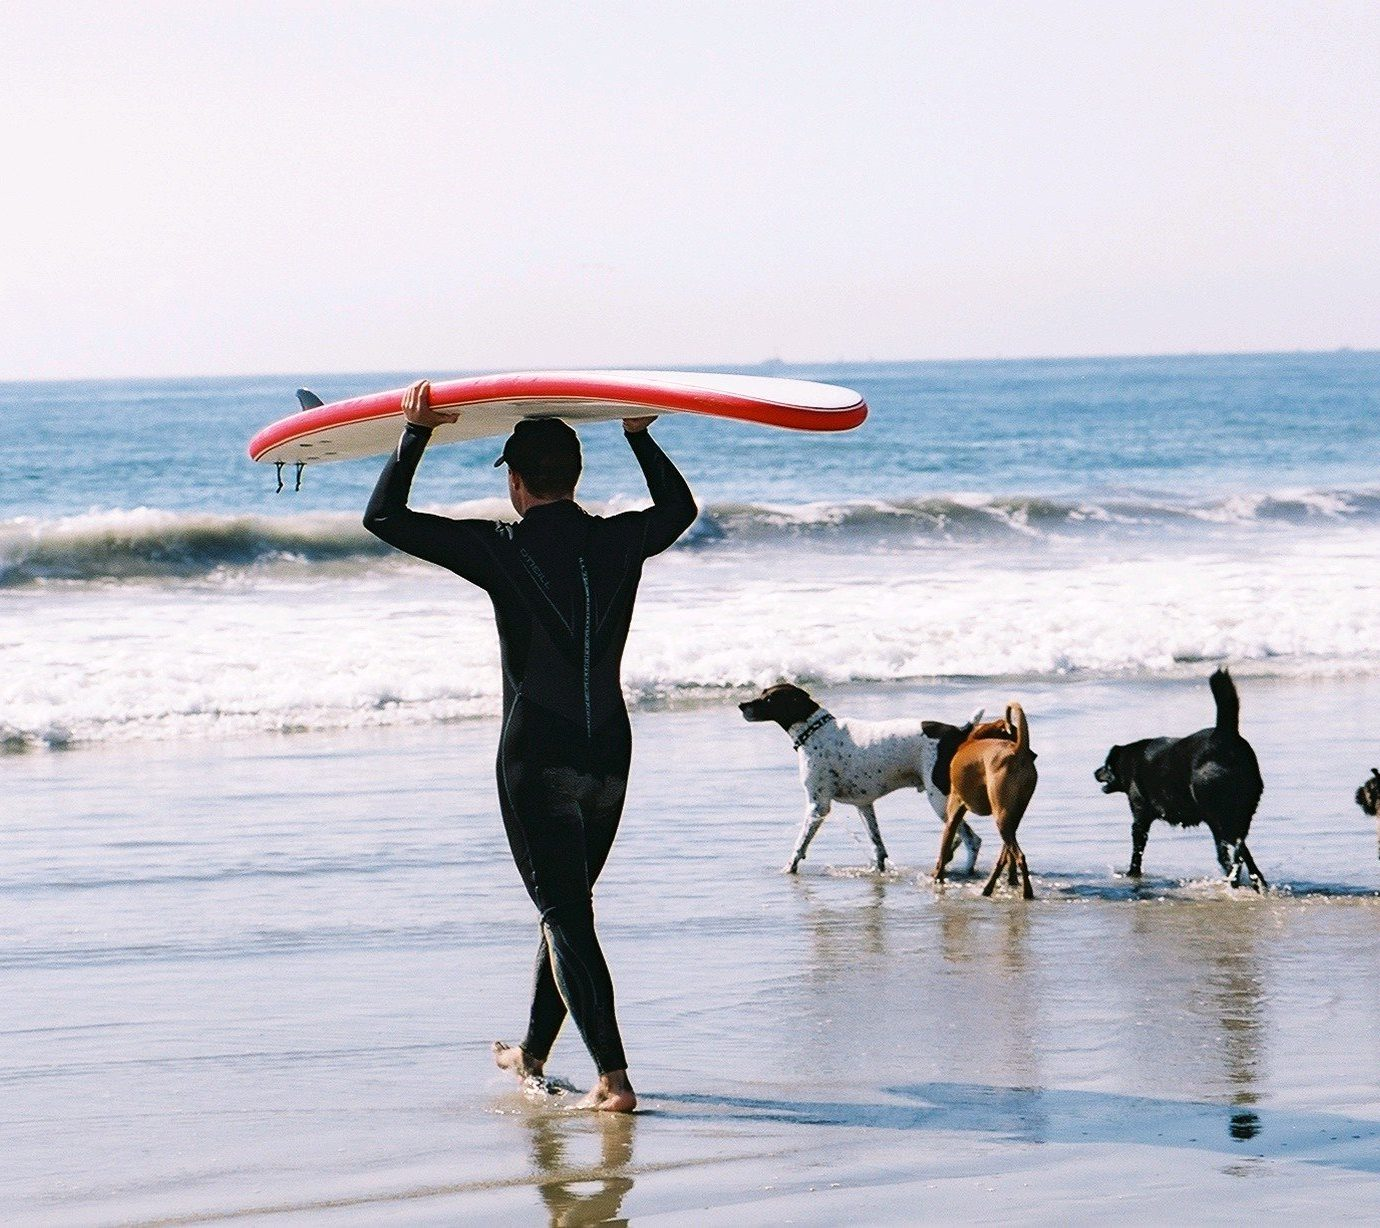 Hotels Offbeat water sky Beach outdoor Ocean Sea Coast shore vacation surfboard surfing surfing equipment and supplies wave sports surface water sports